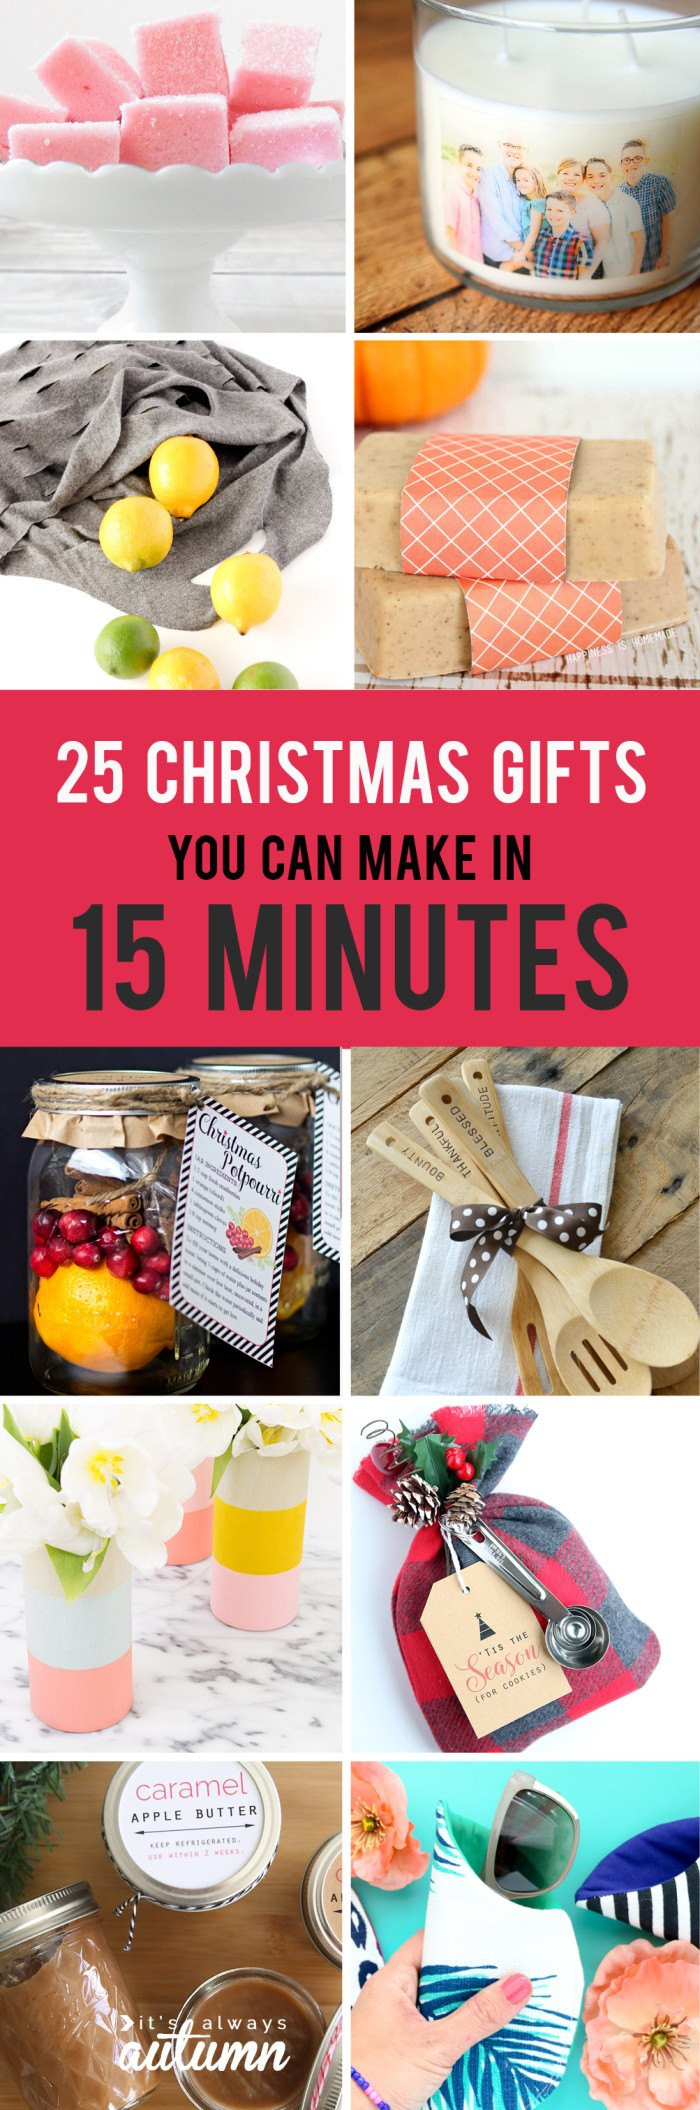 Unique DIY Gifts  25 Easy Christmas Gifts That You Can Make in 15 Minutes